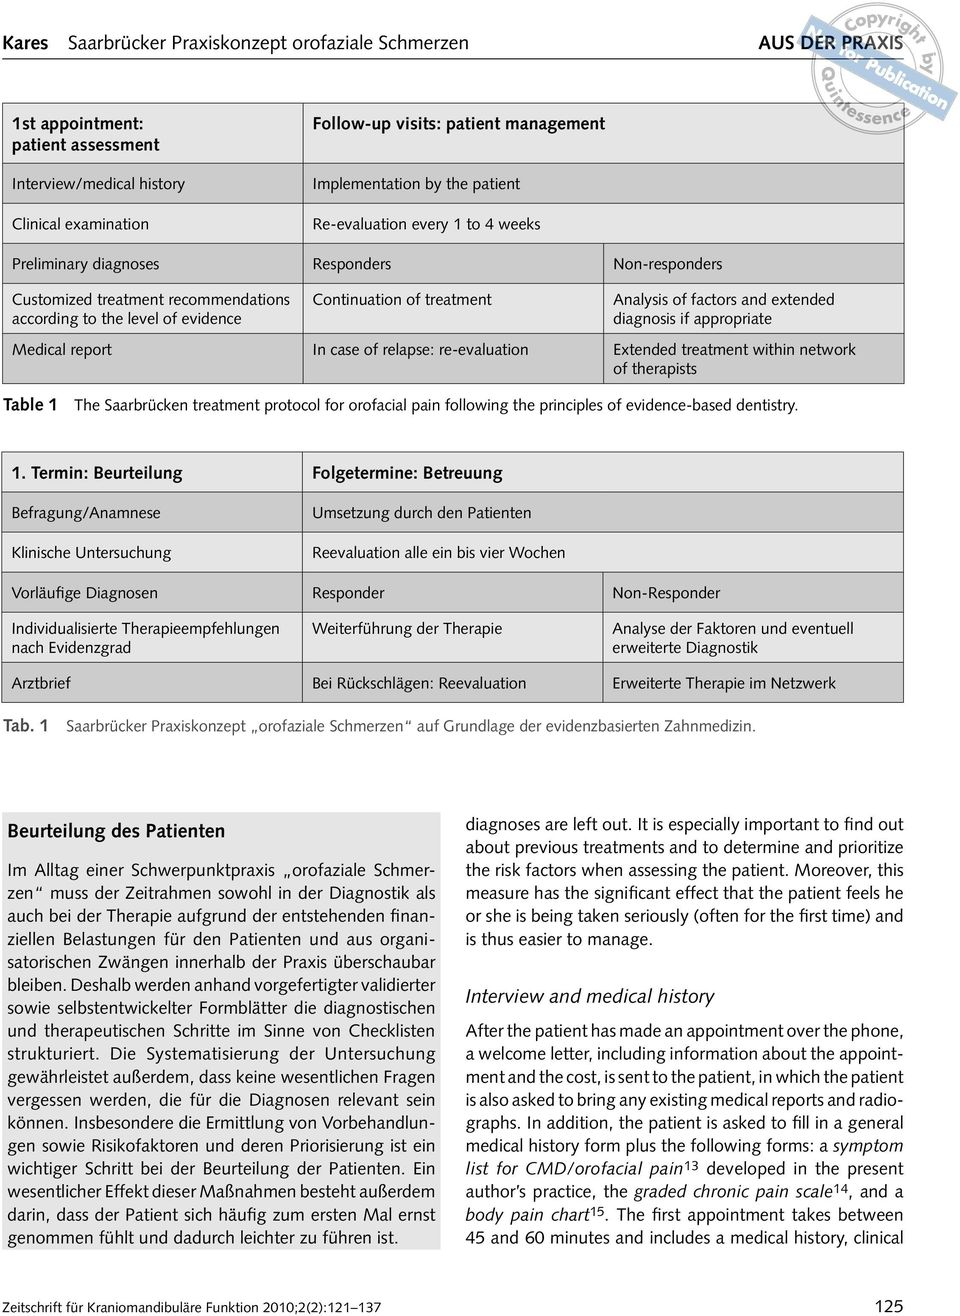 treatment Analysis of factors and extended diagnosis if appropriate Medical report In case of relapse: re-evaluation Extended treatment within network of therapists Table 1 The Saarbrücken treatment